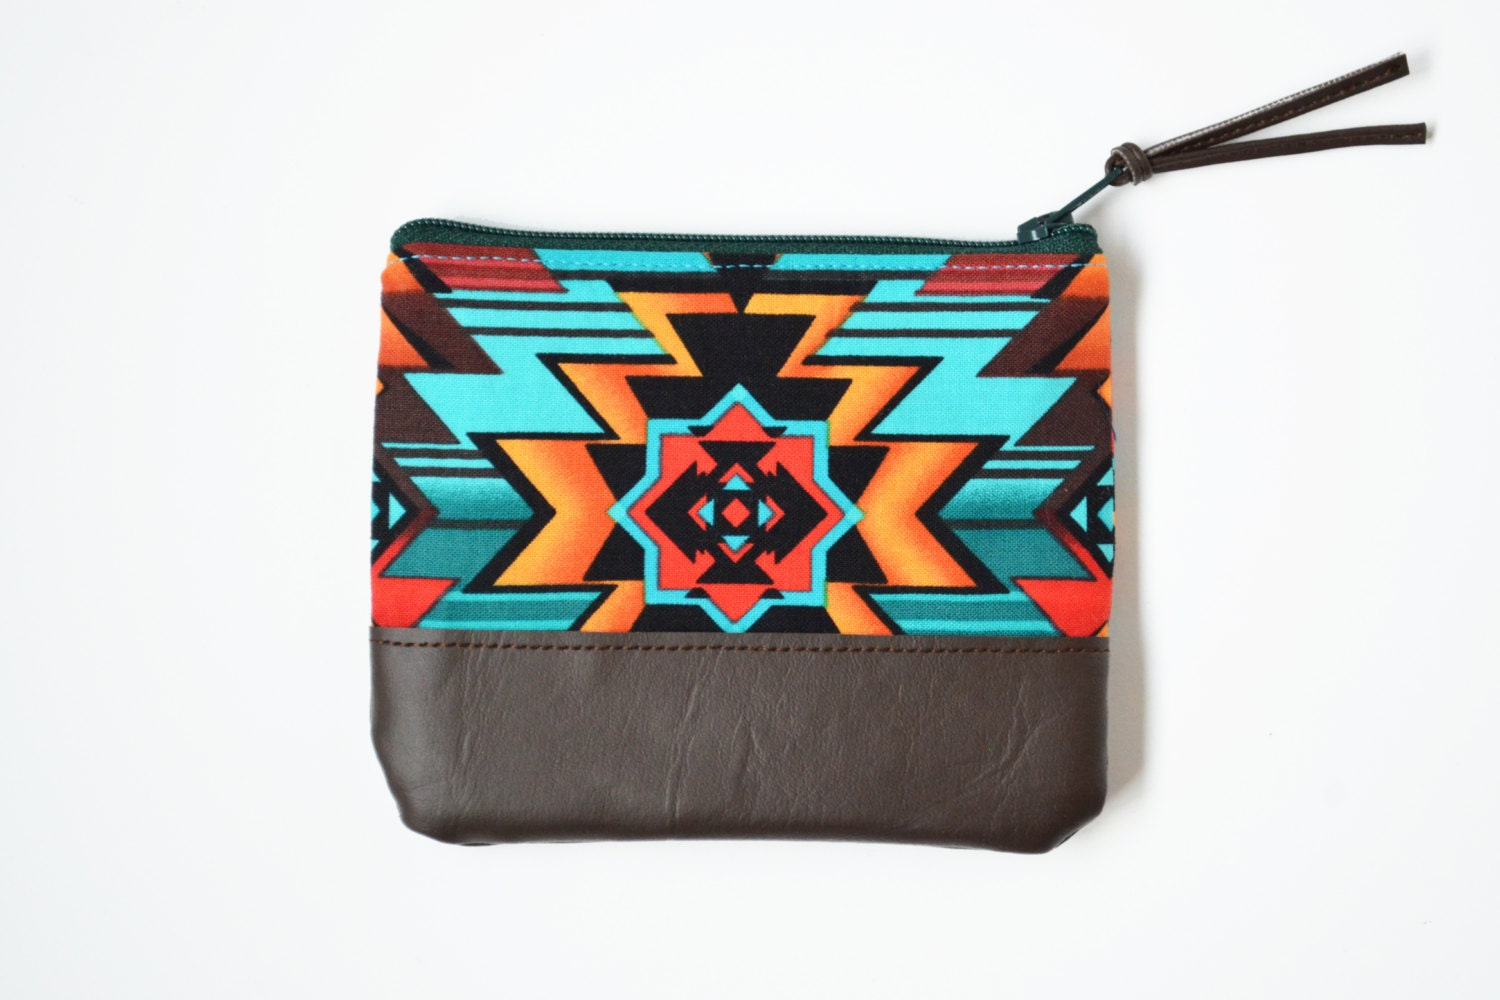 Coin Purse - Tribal Inspiration, Card Pouch with Leather Trim Accent, Leather Coin Purse - sewandtellhandmade